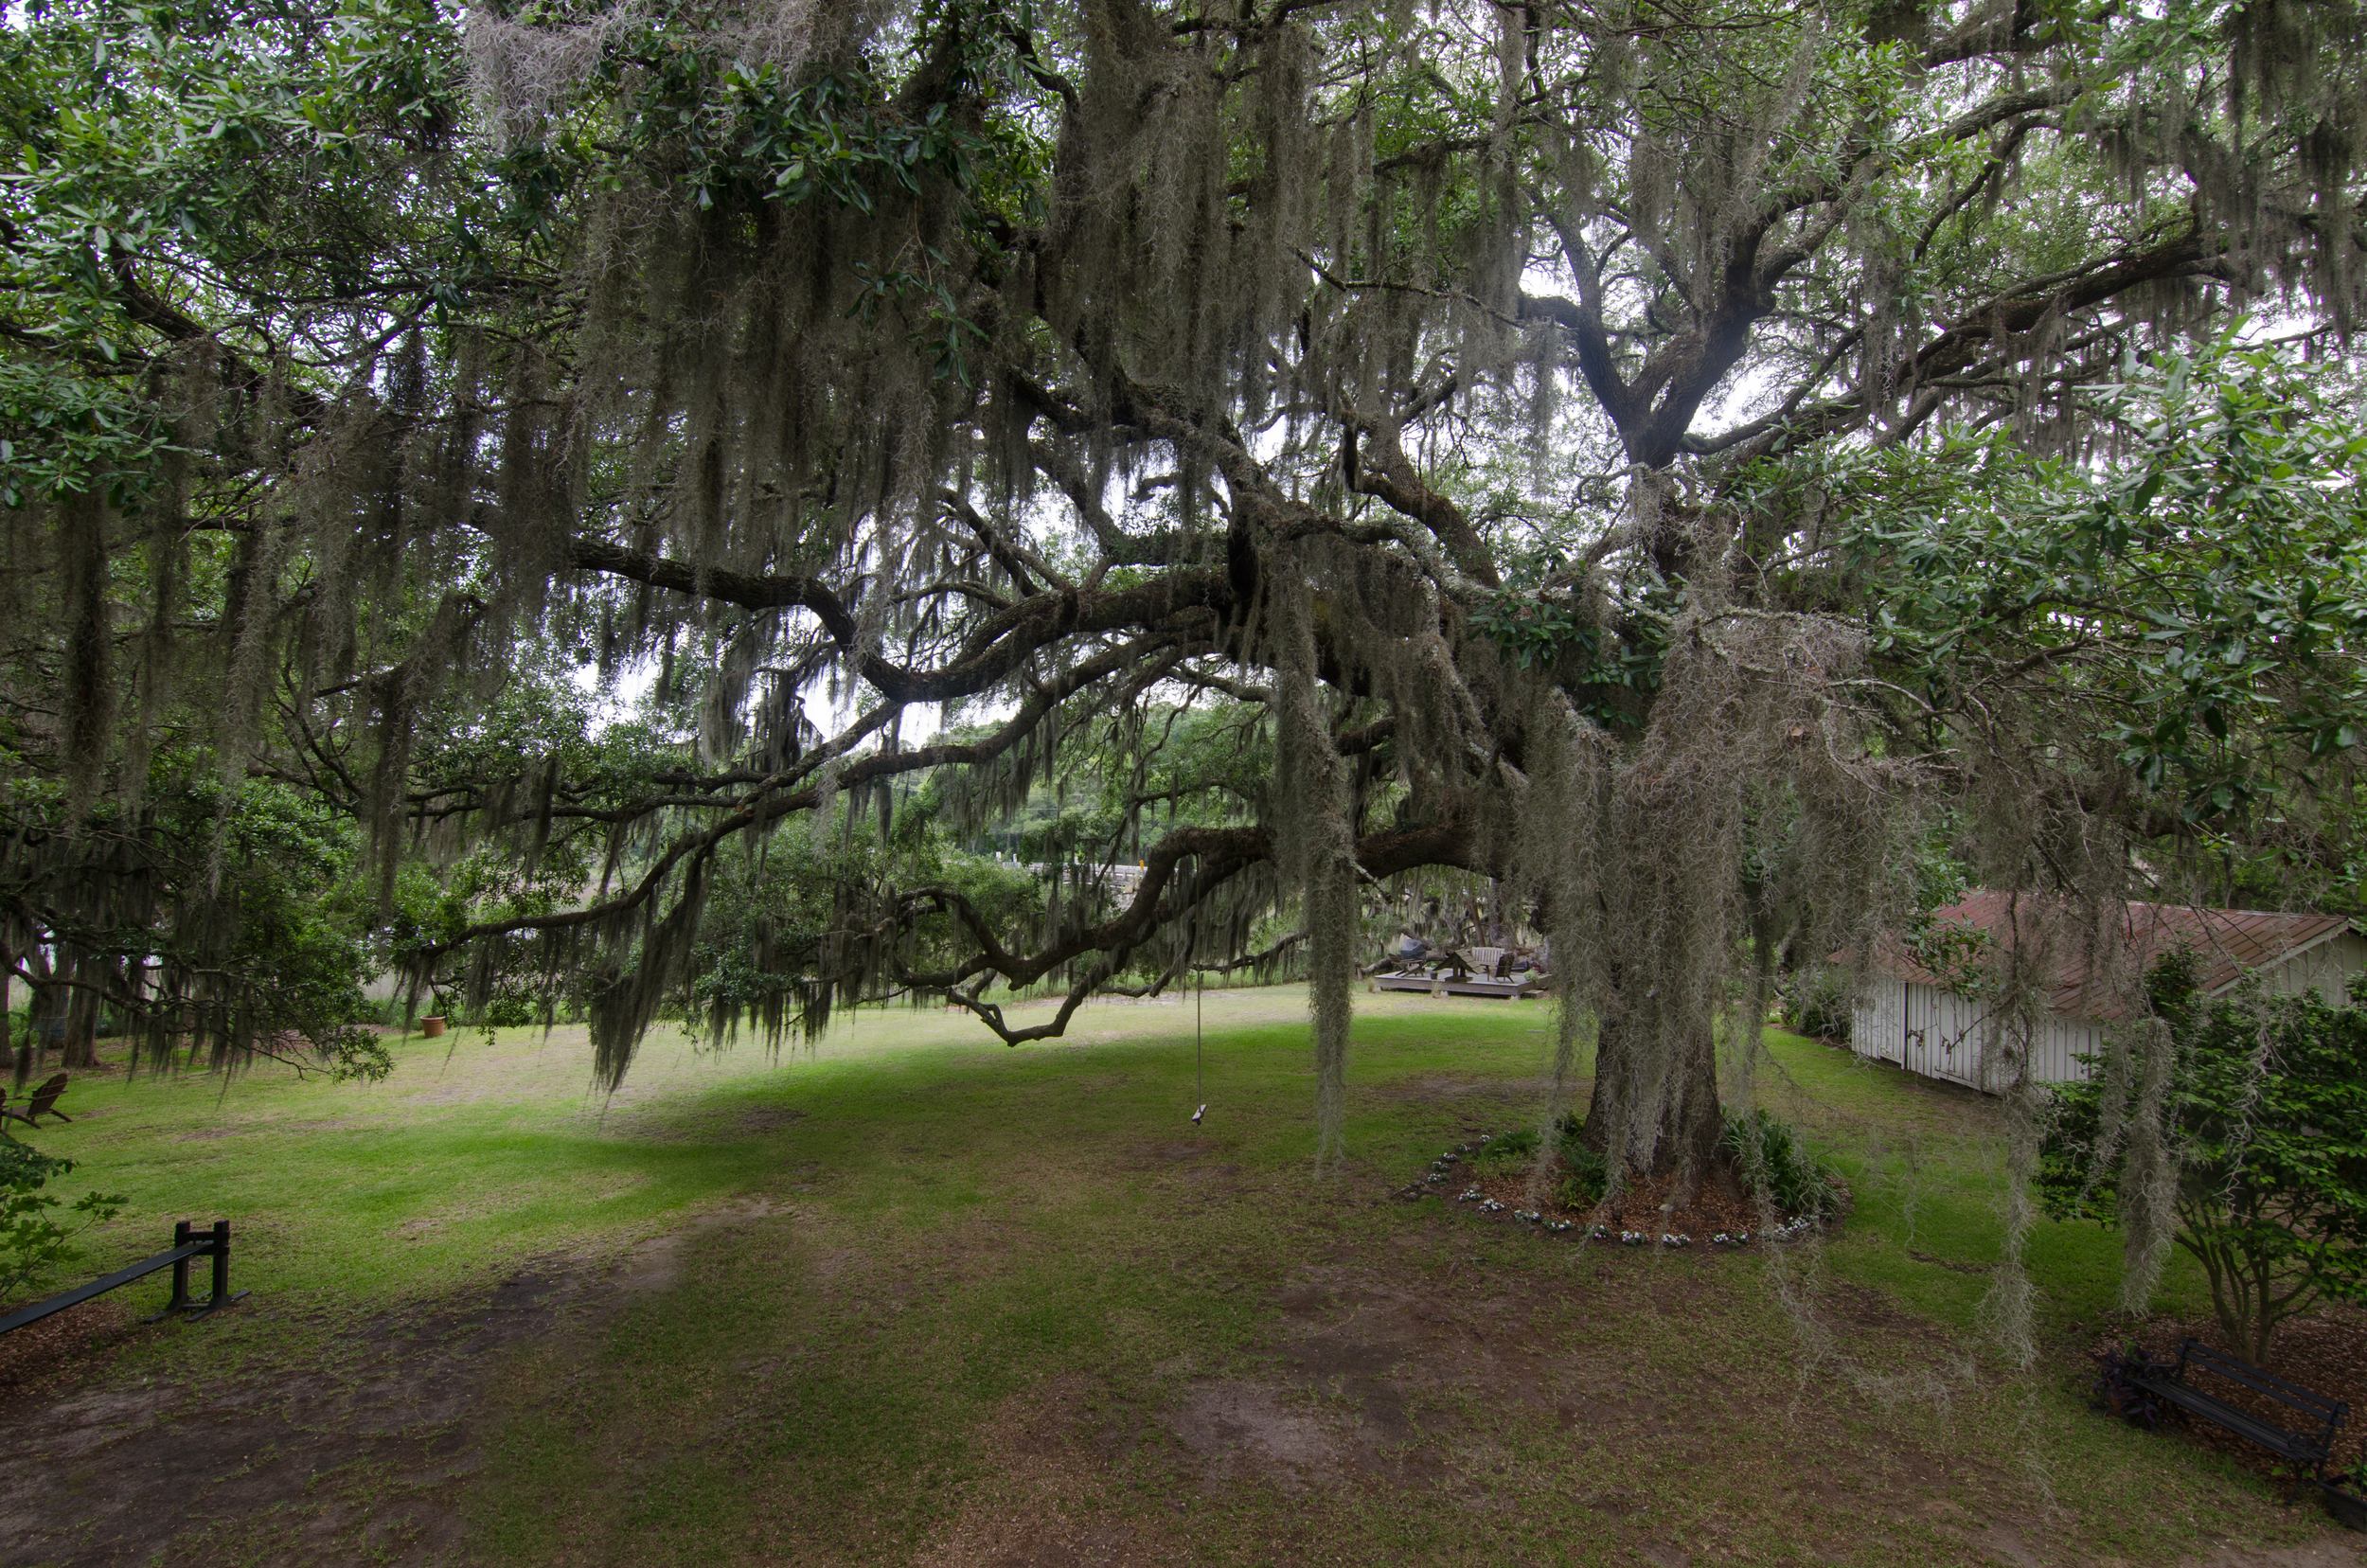 Massive live Oak situated in the backyard of the Bailey House.